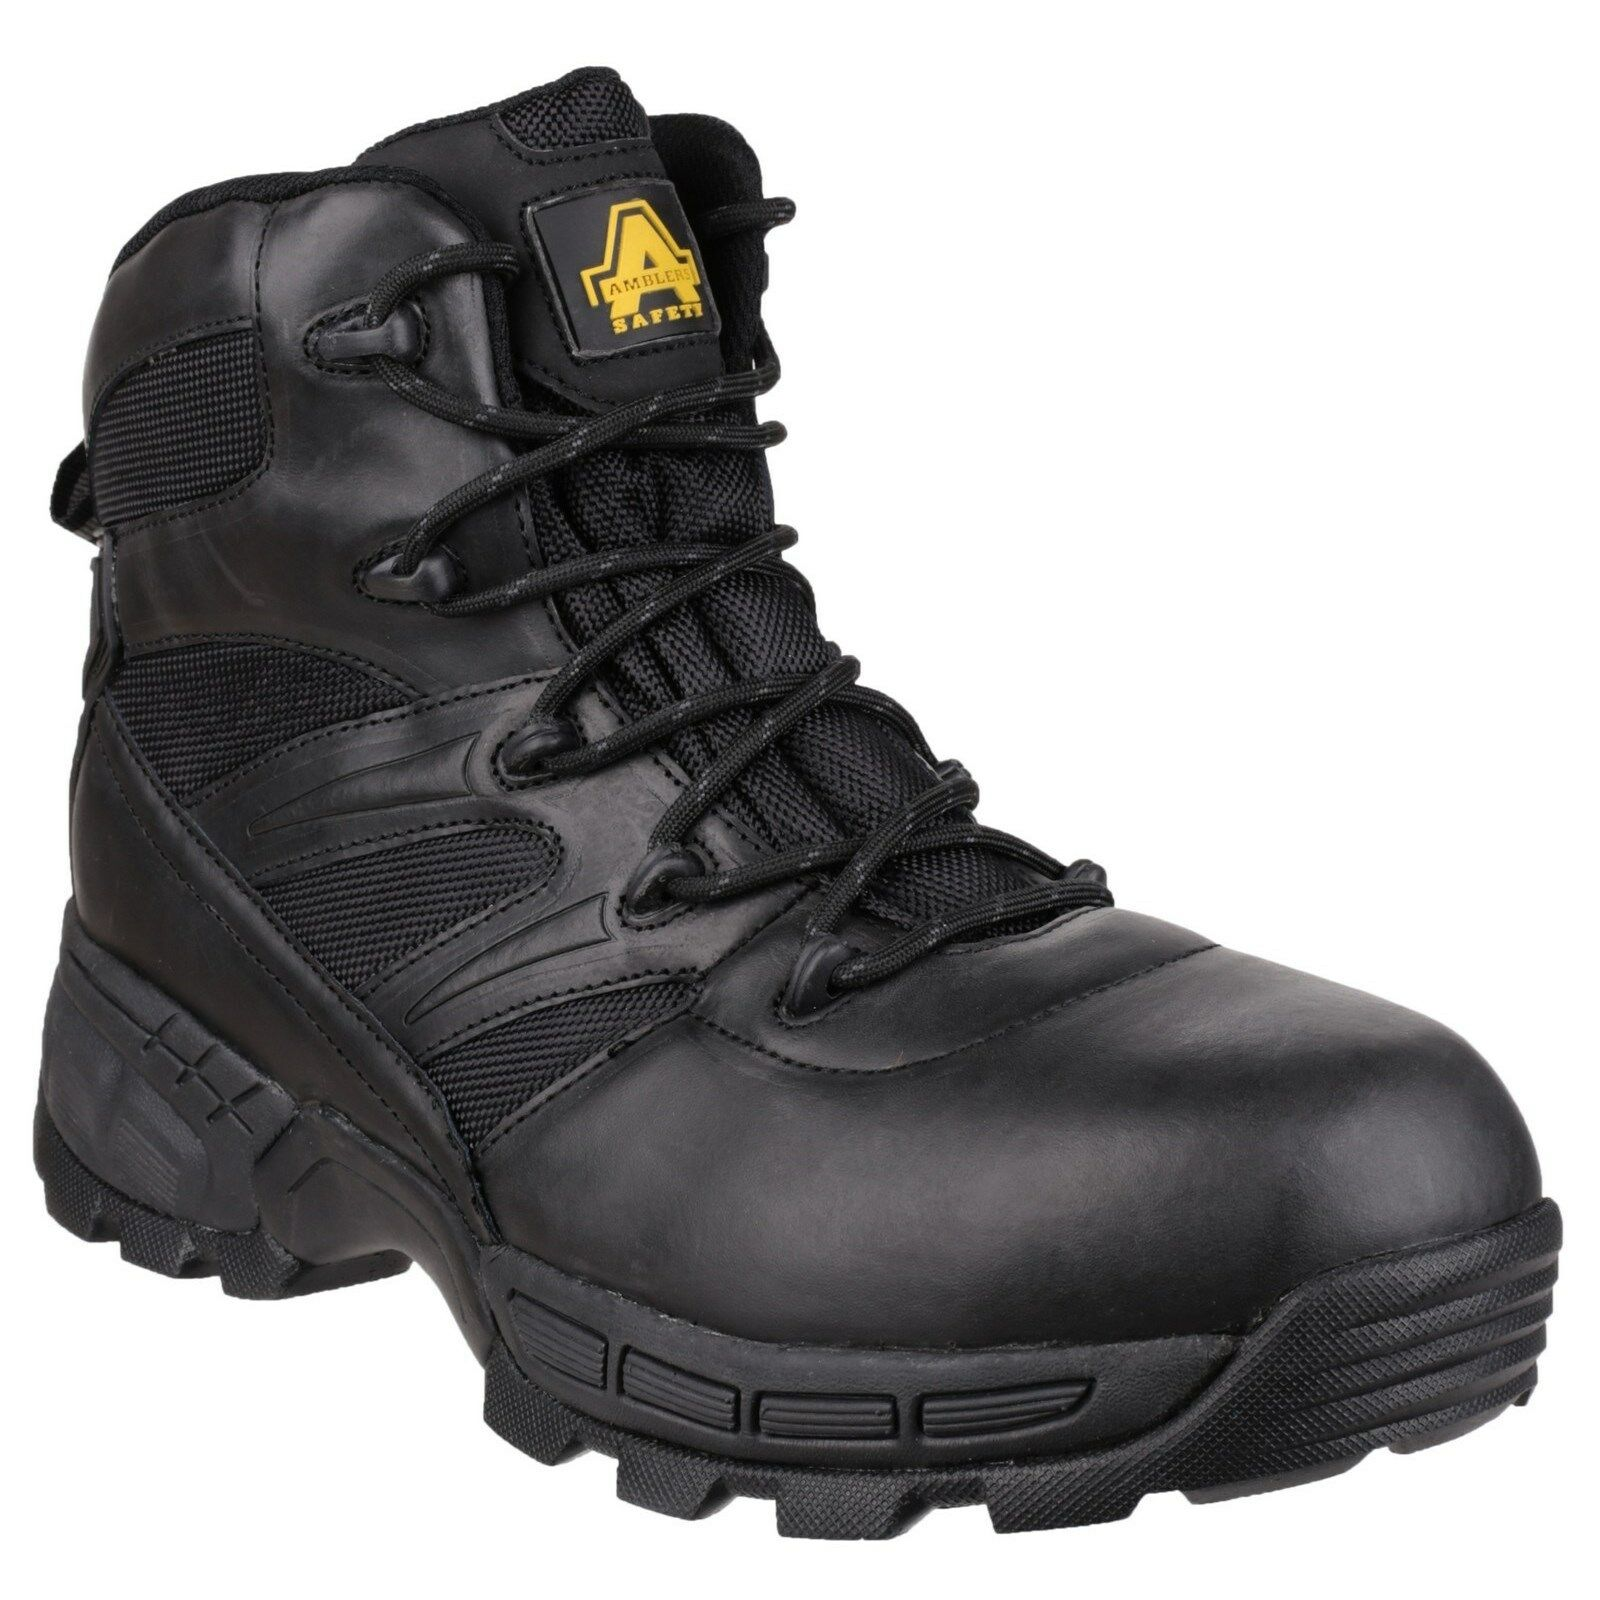 Amblers Toe FS410 Piranha Safety botas Hombre S3 Steel Toe Amblers Cap Waterproof Leather Work b388de